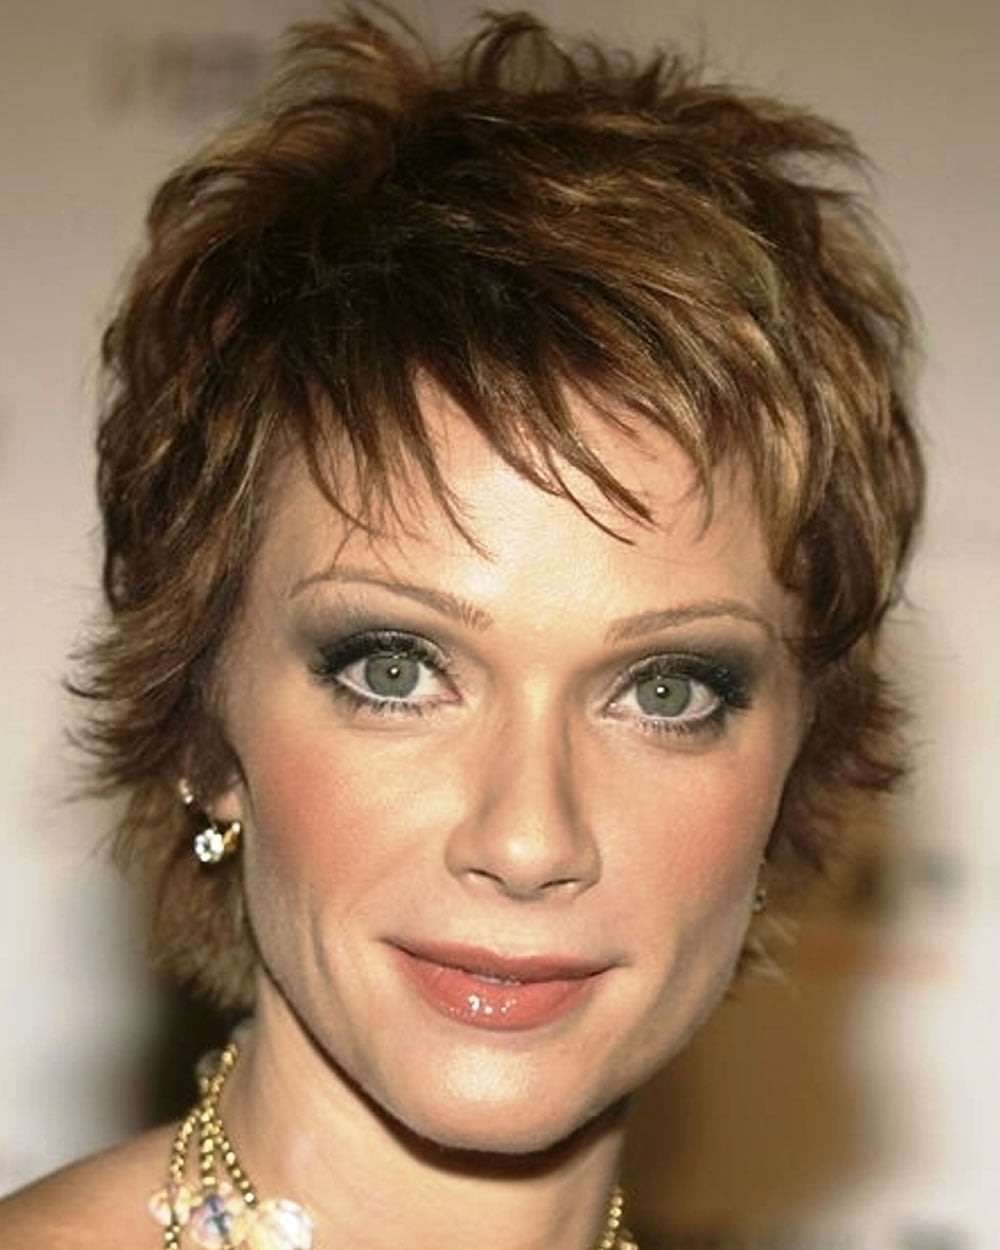 Short Spiky Haircuts Amp Hairstyles For Women 2018 Page 6